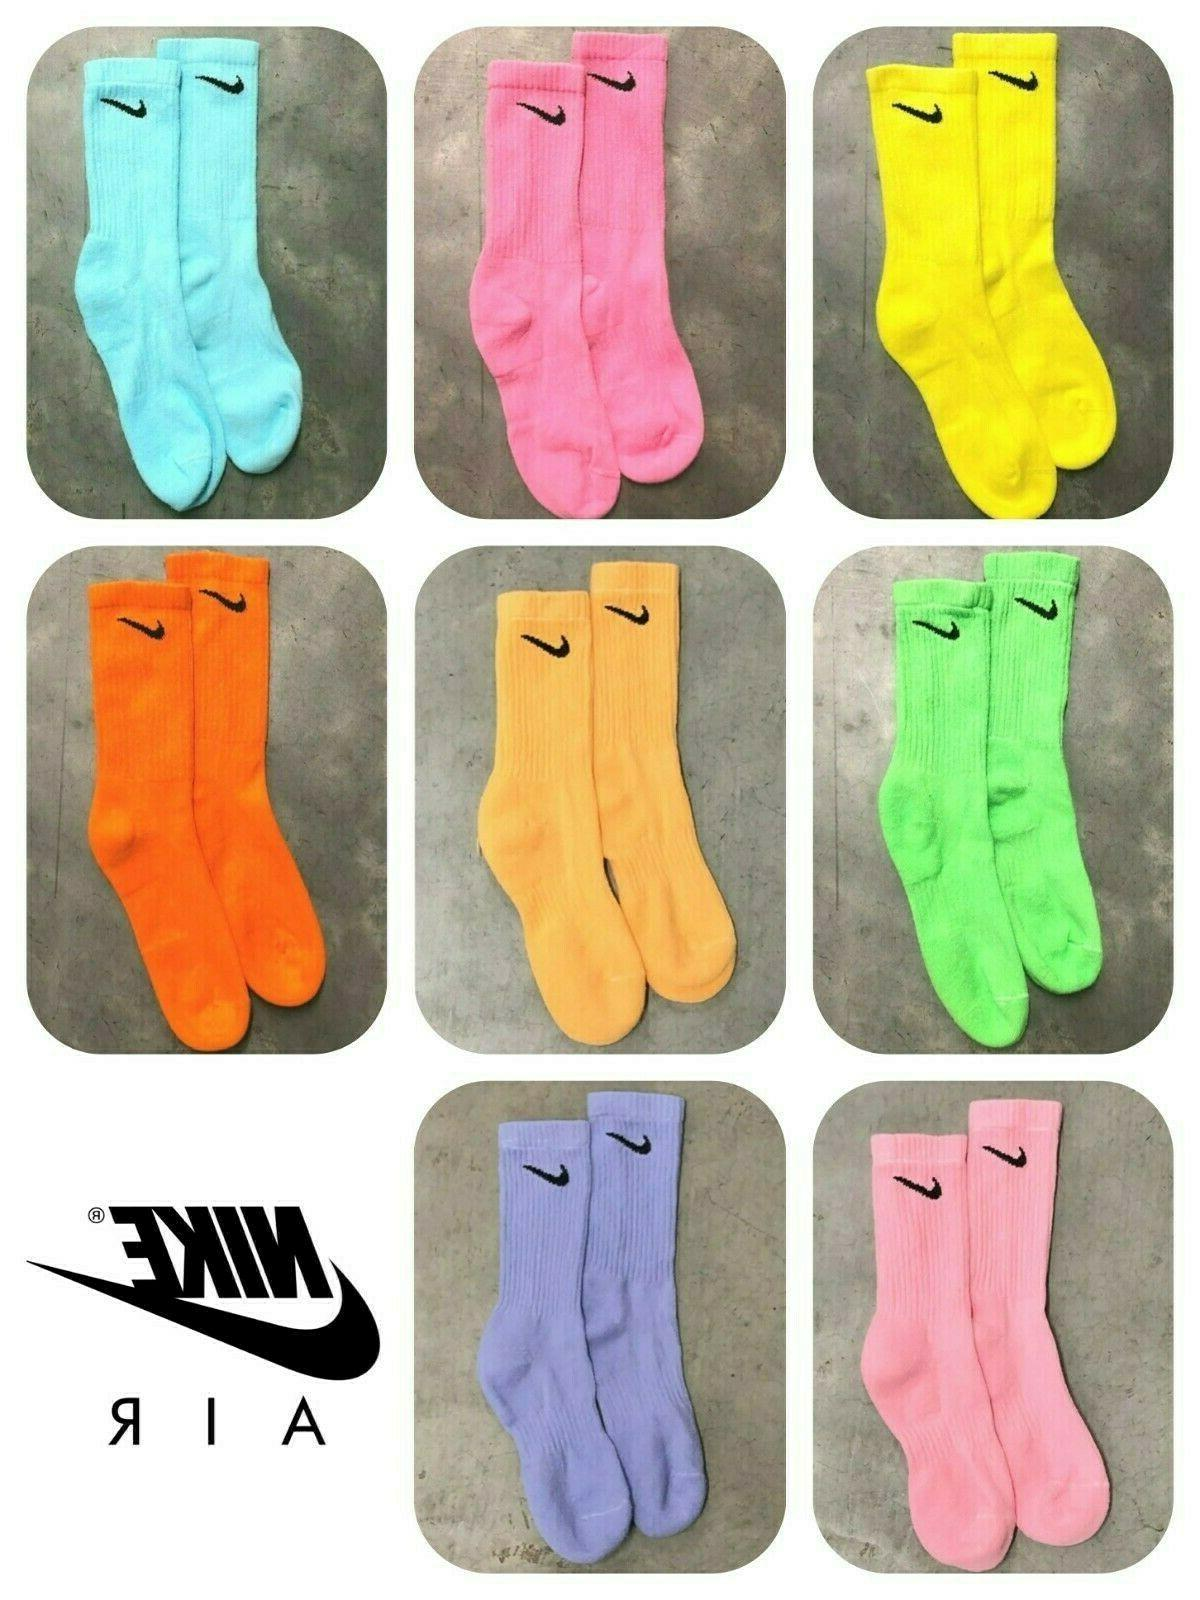 official everyday socks solid color socks dri